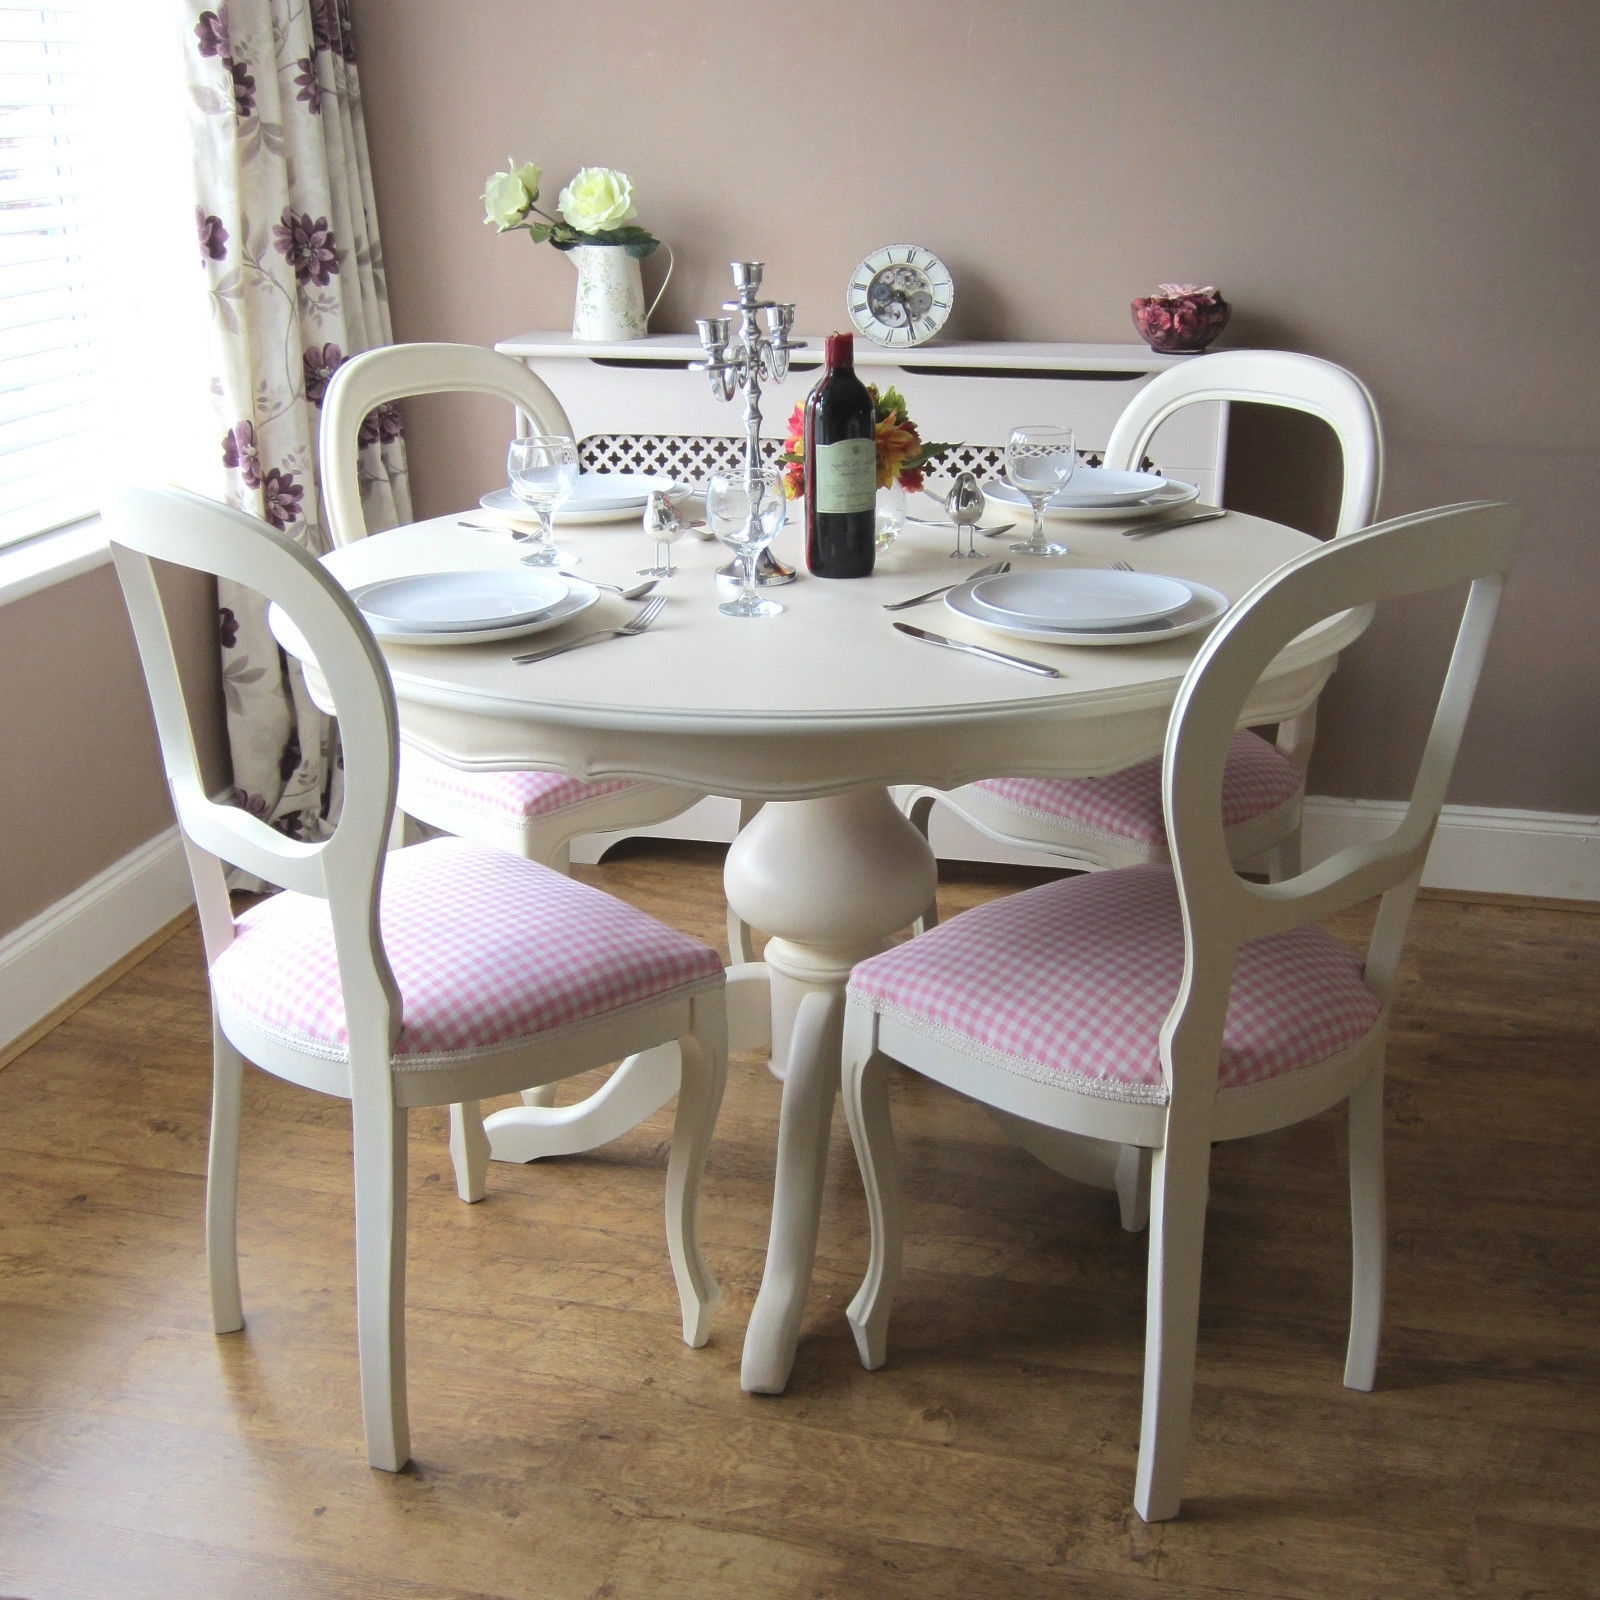 Shabby Chic Table And Chairs (View 1 of 25)